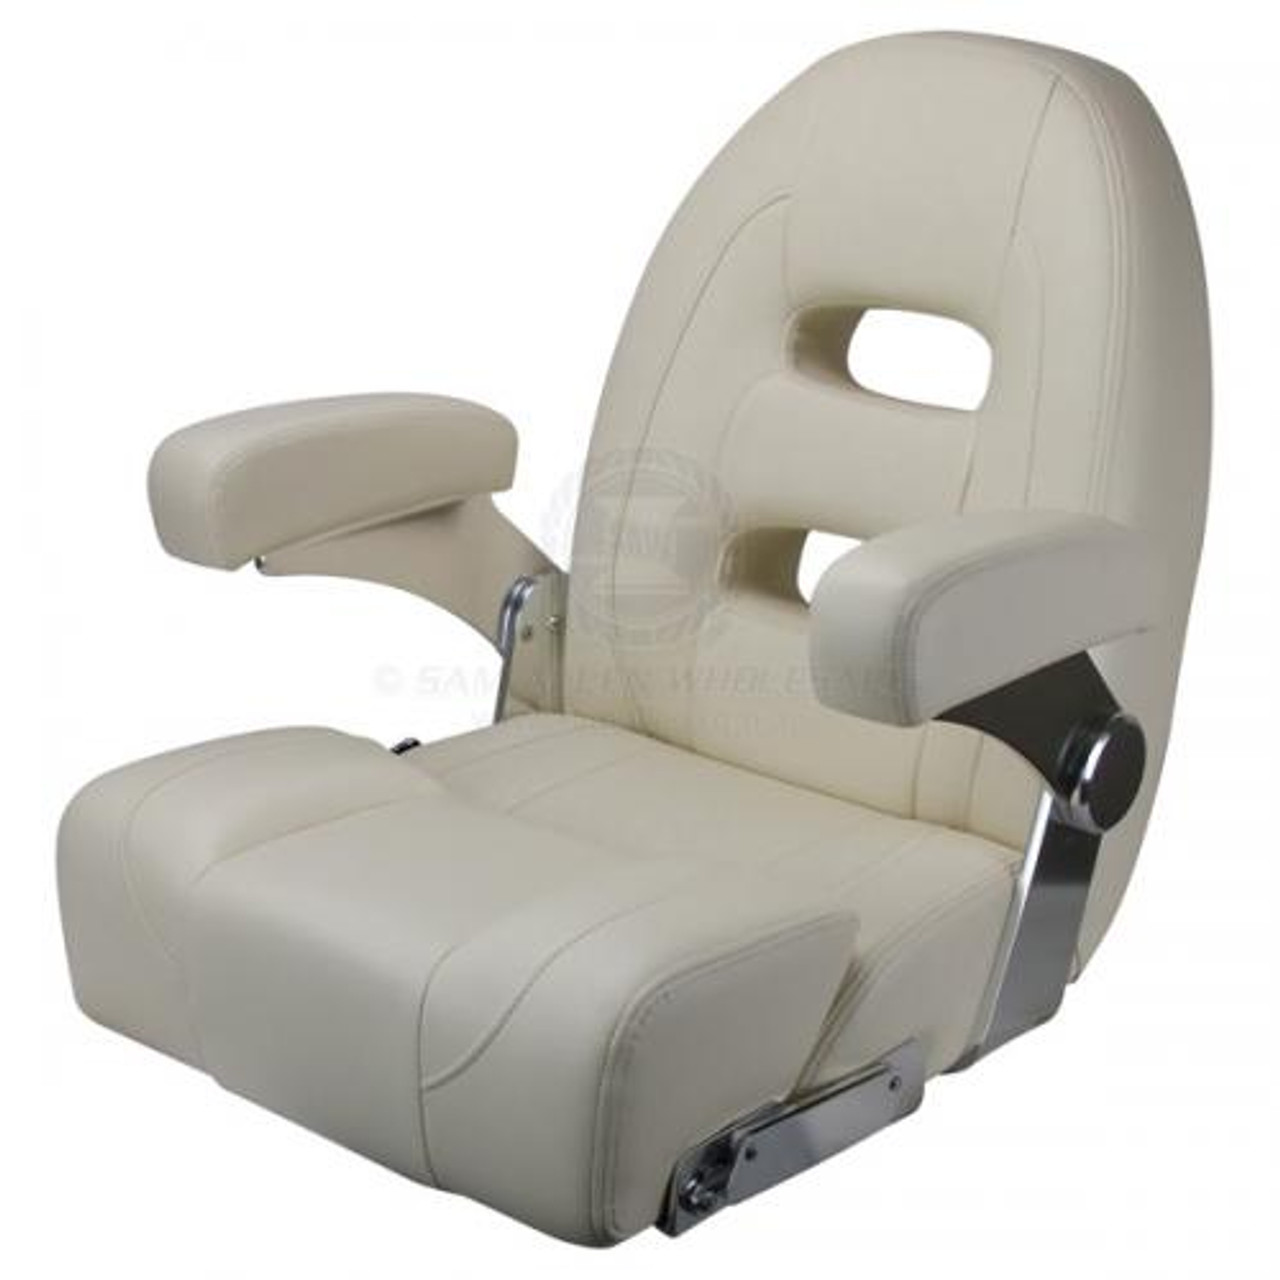 Helm Chair - Cruiser Series with High Back - Ivory